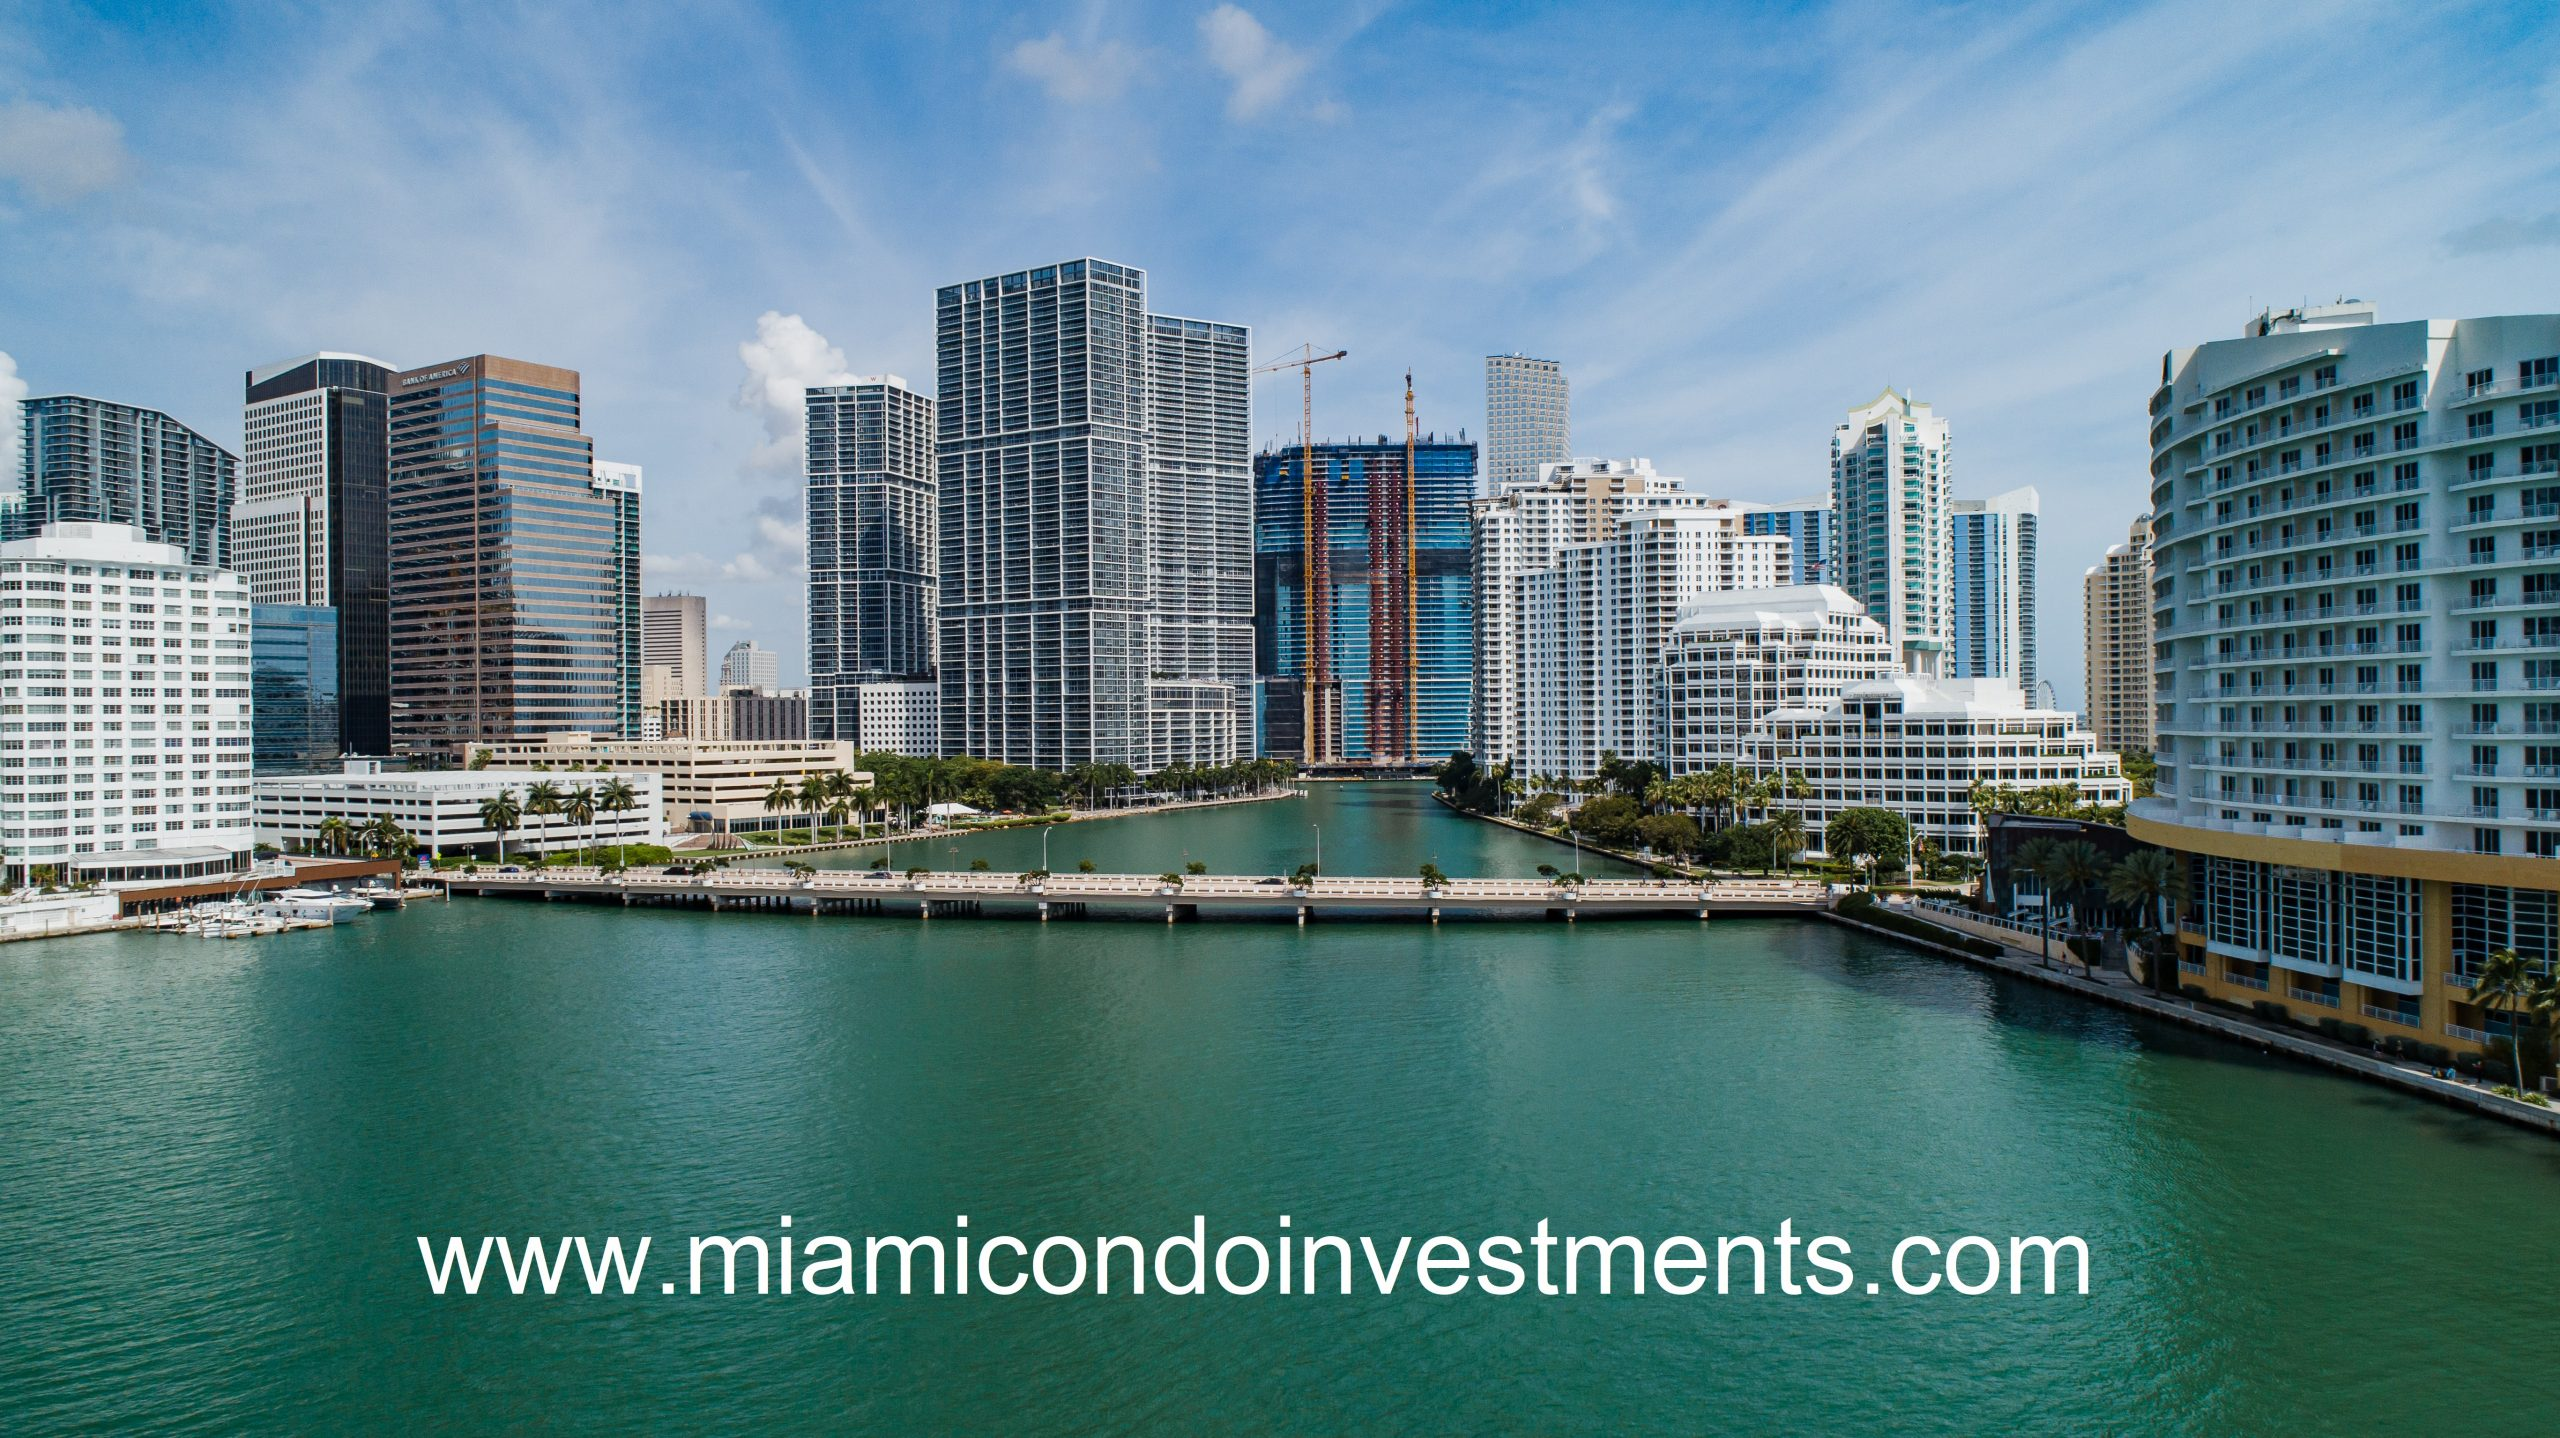 View of Aston Martin Residences from Biscayne Bay